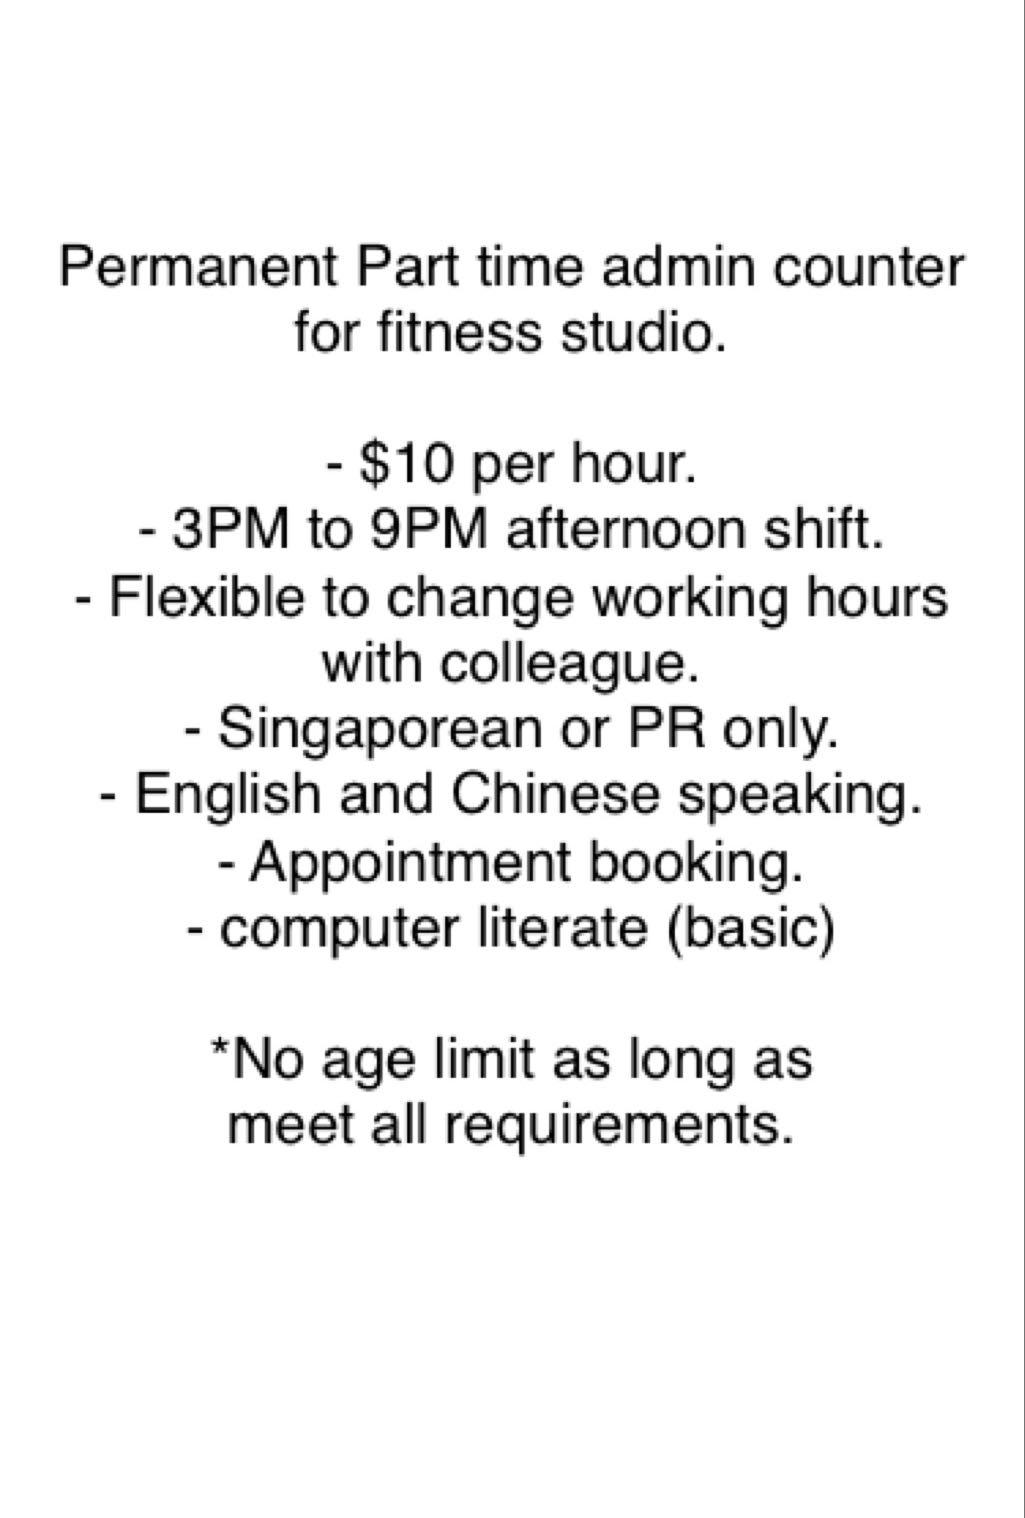 Permanent part time administrative